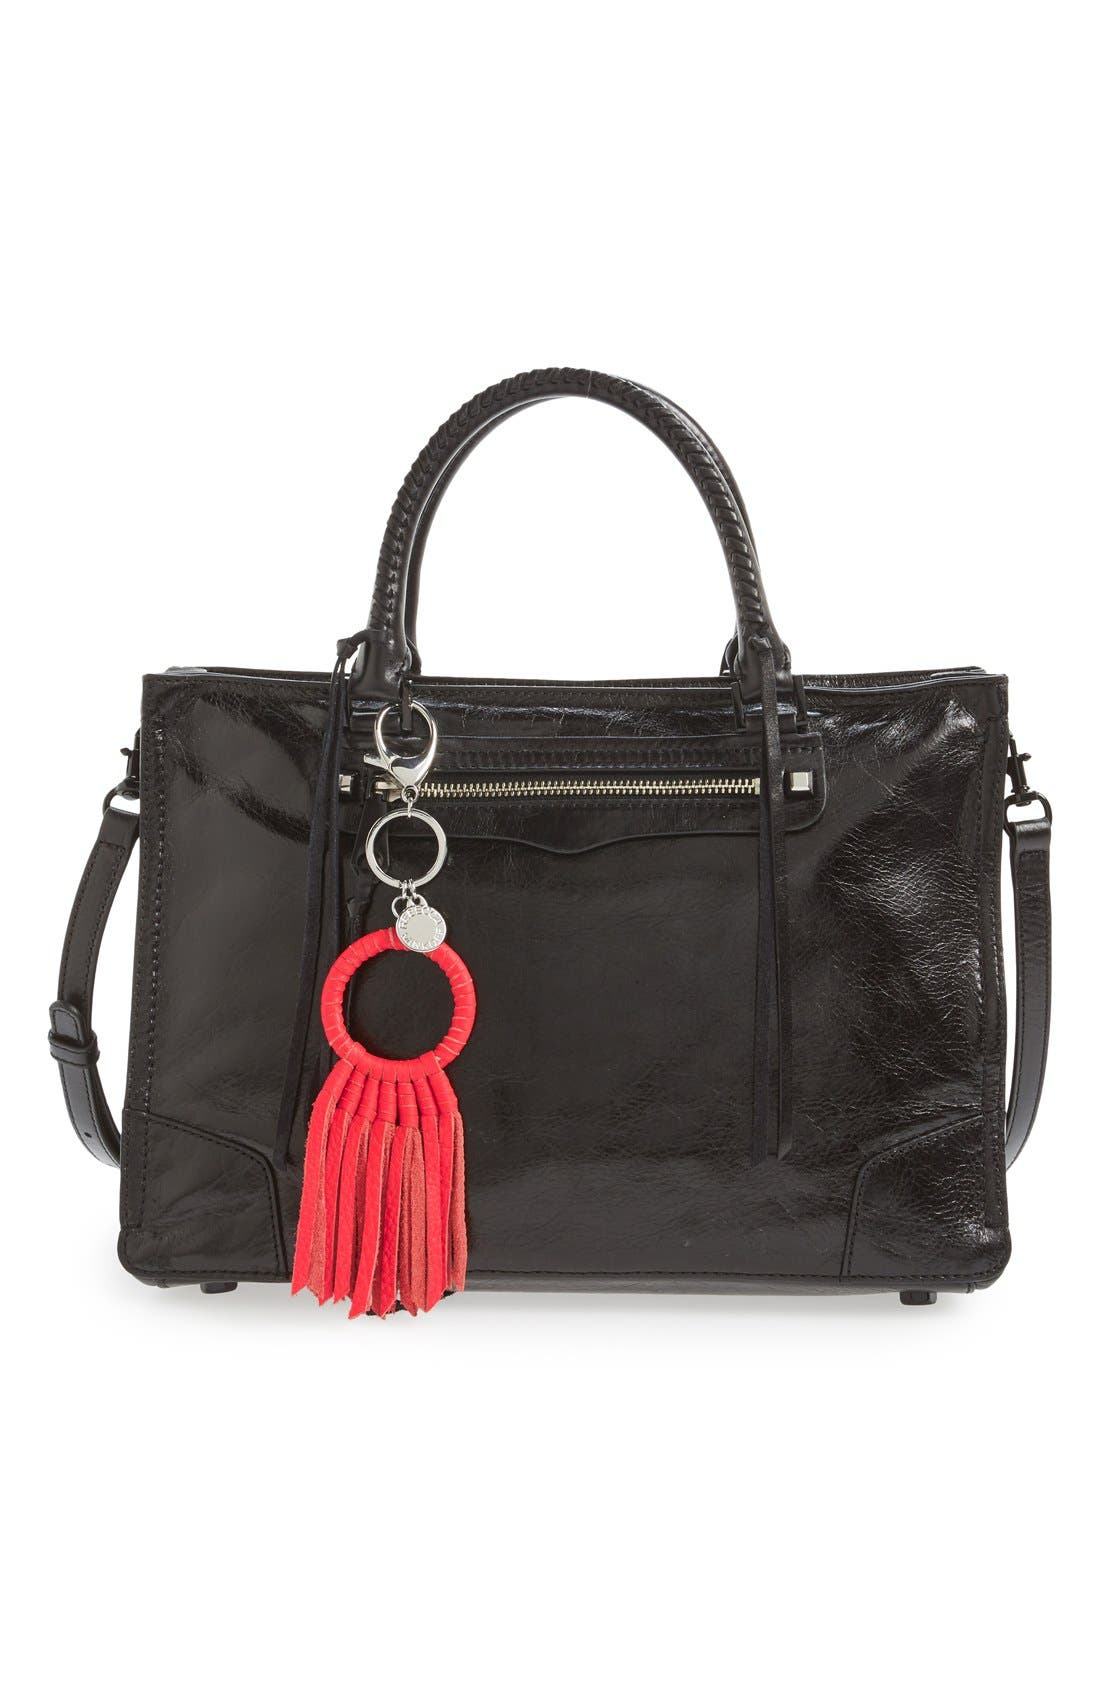 Alternate Image 2  - Rebecca Minkoff 'Hippie' Bag Charm